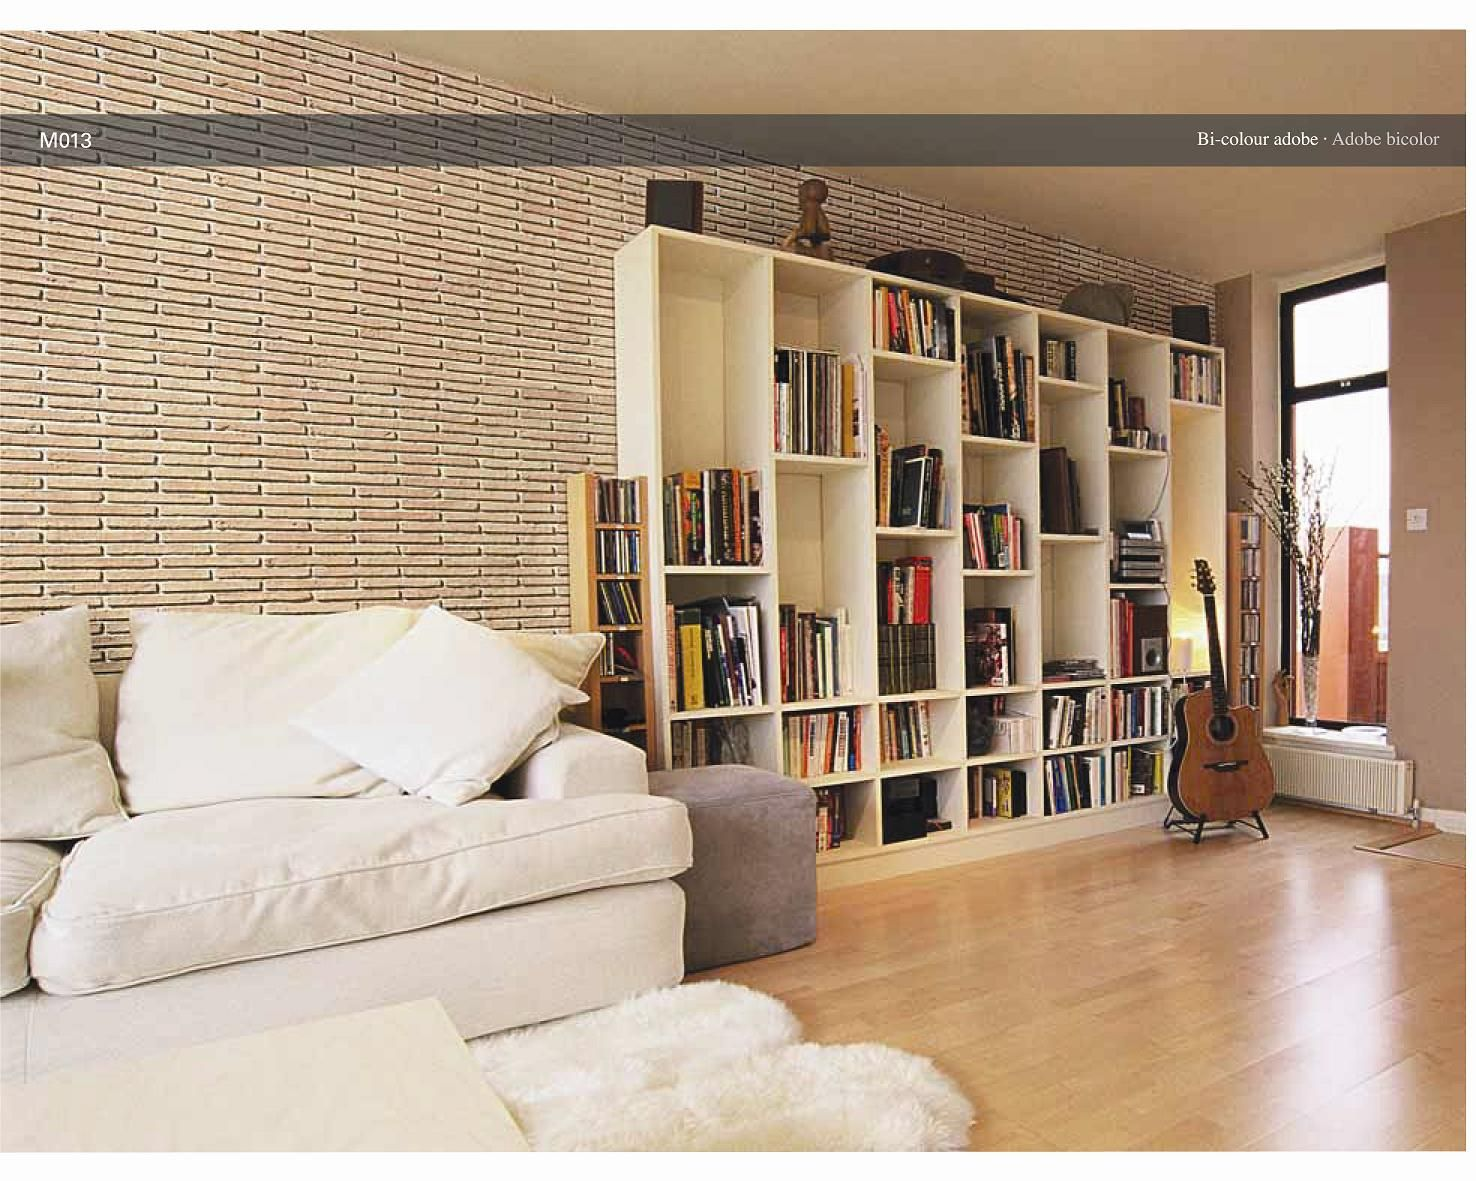 isolation d coratif isolation ext rieure et int rieureles meubles de l 39 italie. Black Bedroom Furniture Sets. Home Design Ideas